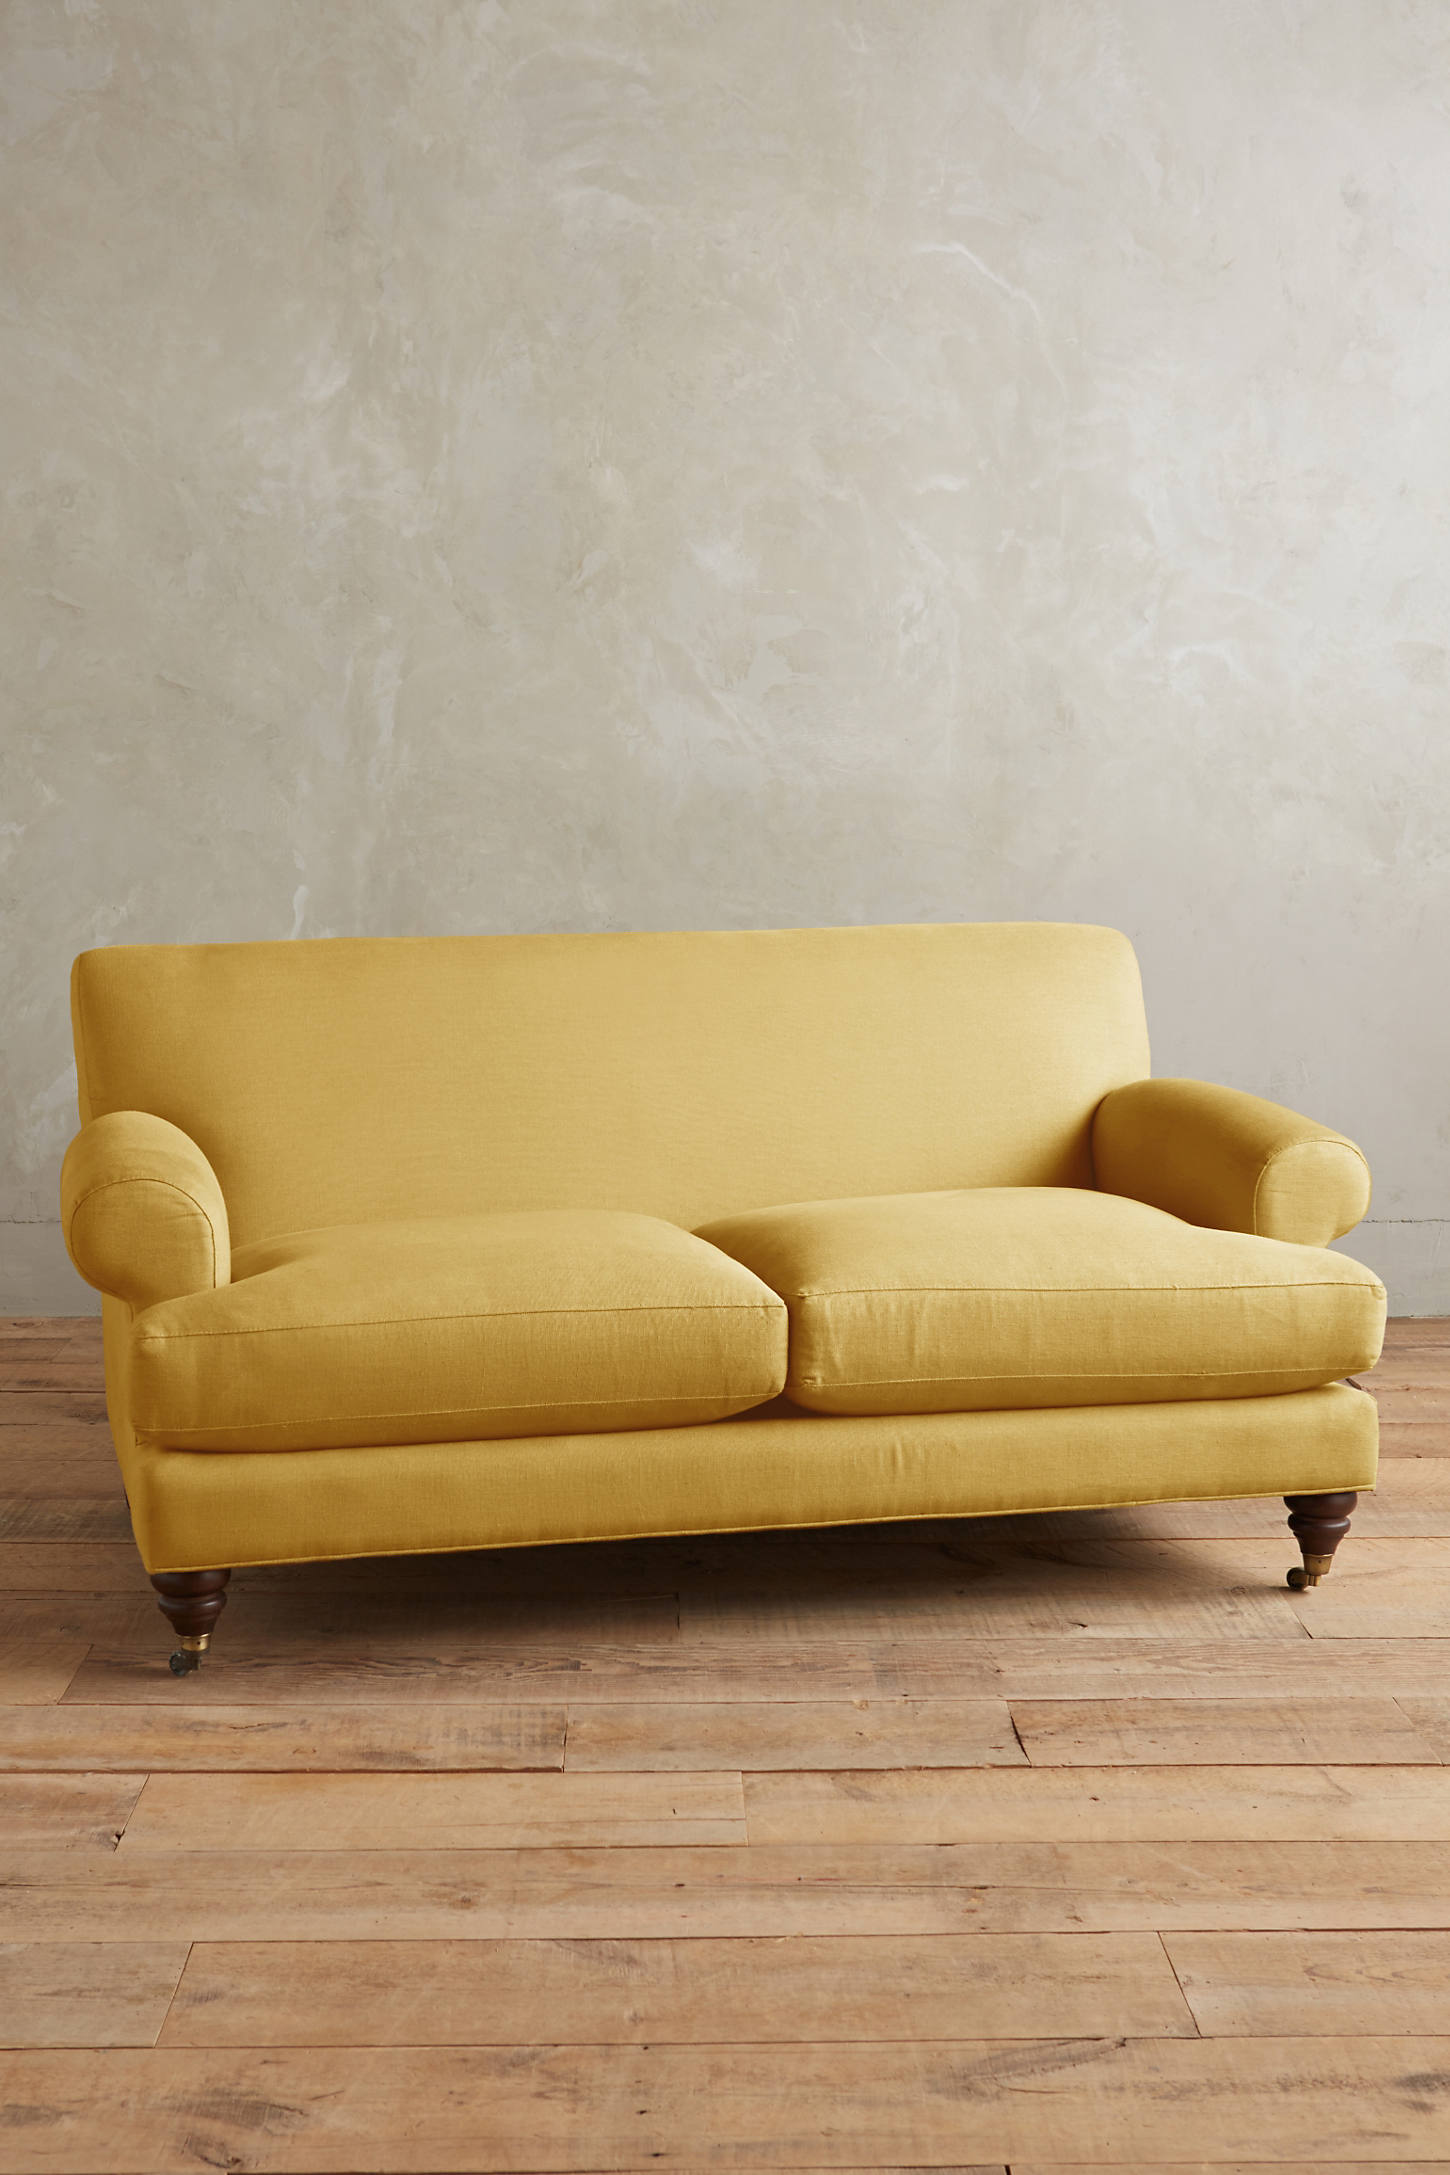 Linen Willoughby Settee, Hickory